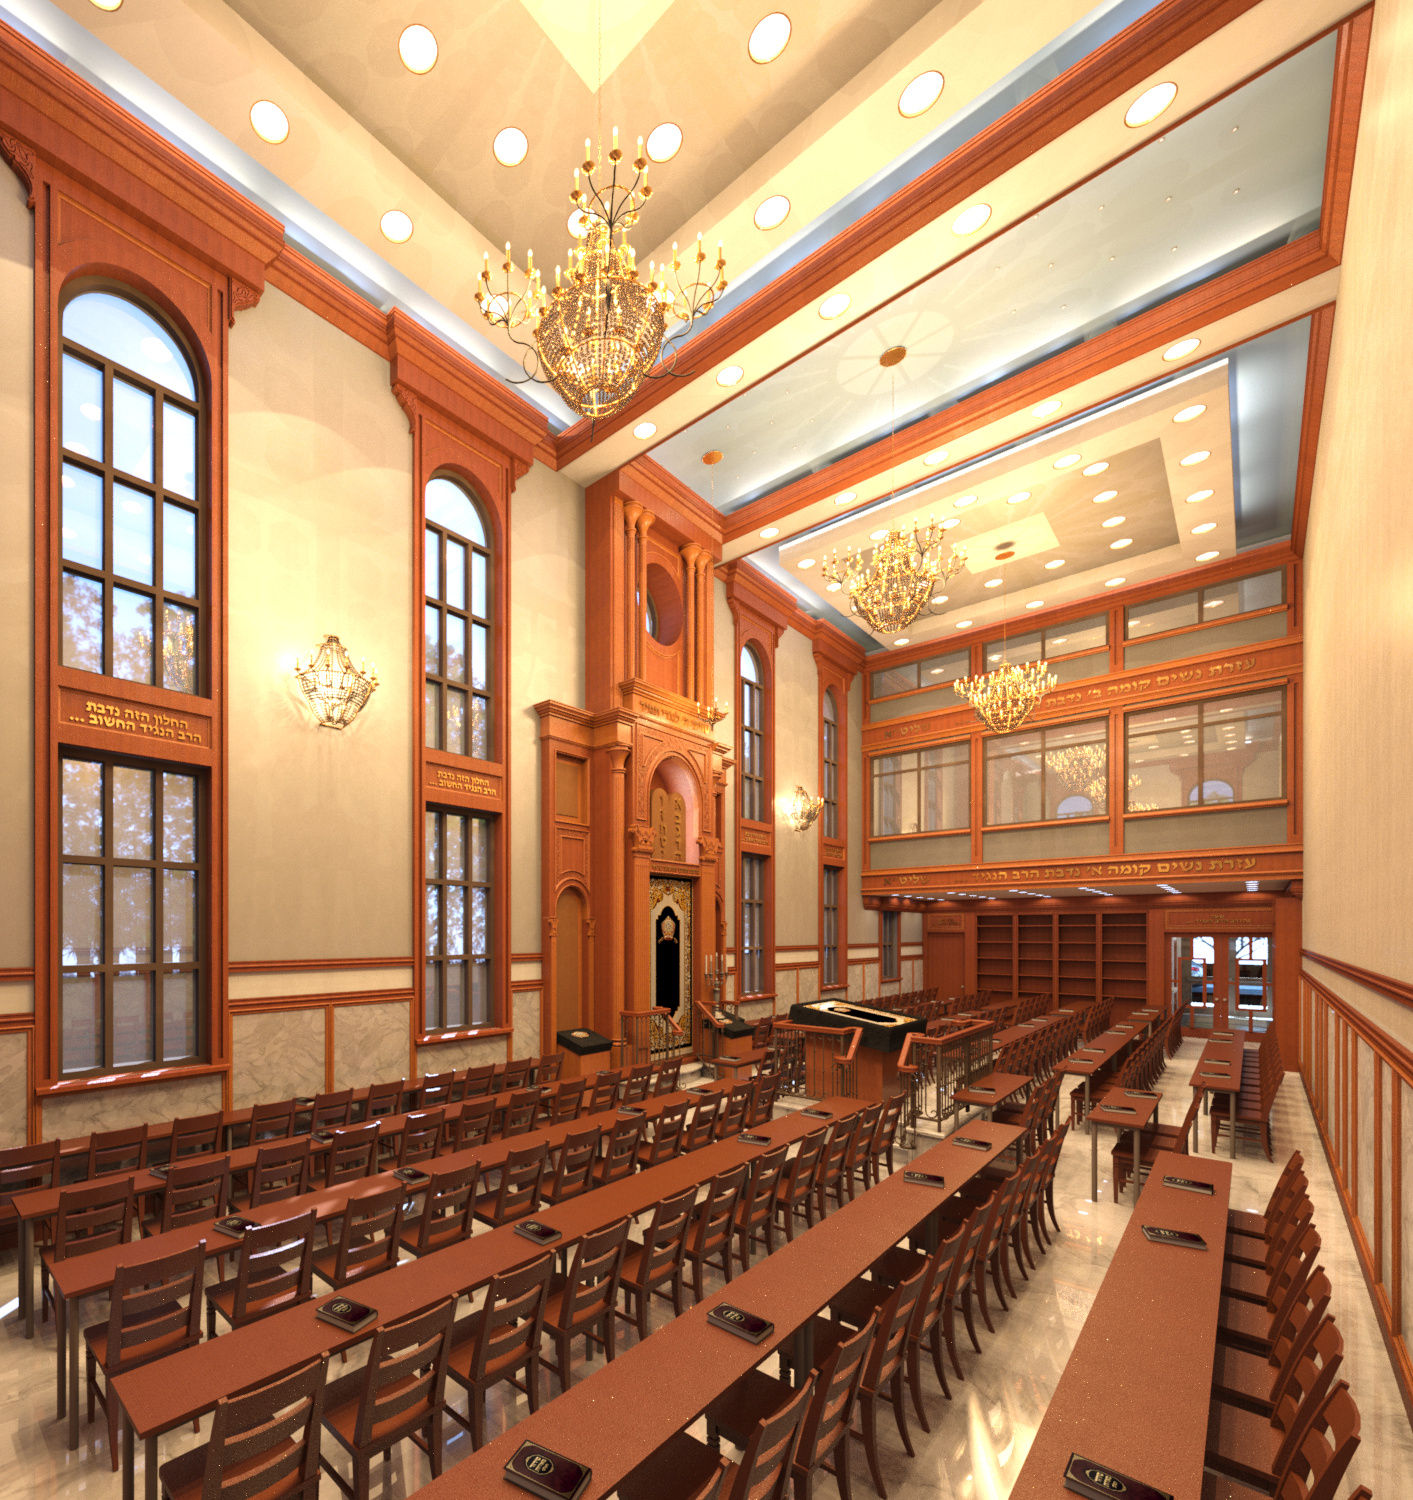 25' X 100' Synagogue Interior/ Exterior- Design